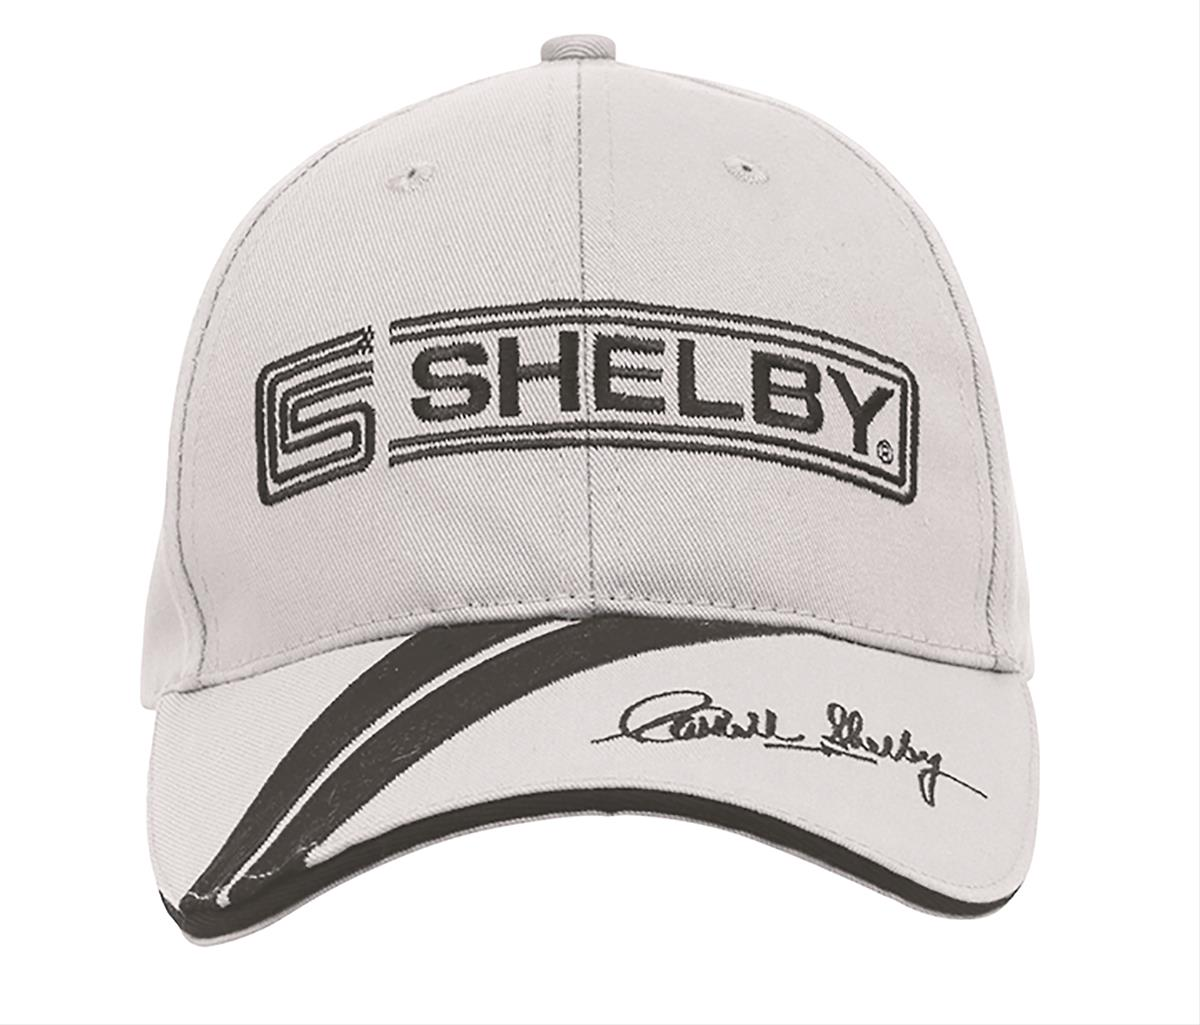 b70d6040fd4a0e Carroll Shelby Autograph Cap 48673 - Free Shipping on Orders Over $99 at  Summit Racing